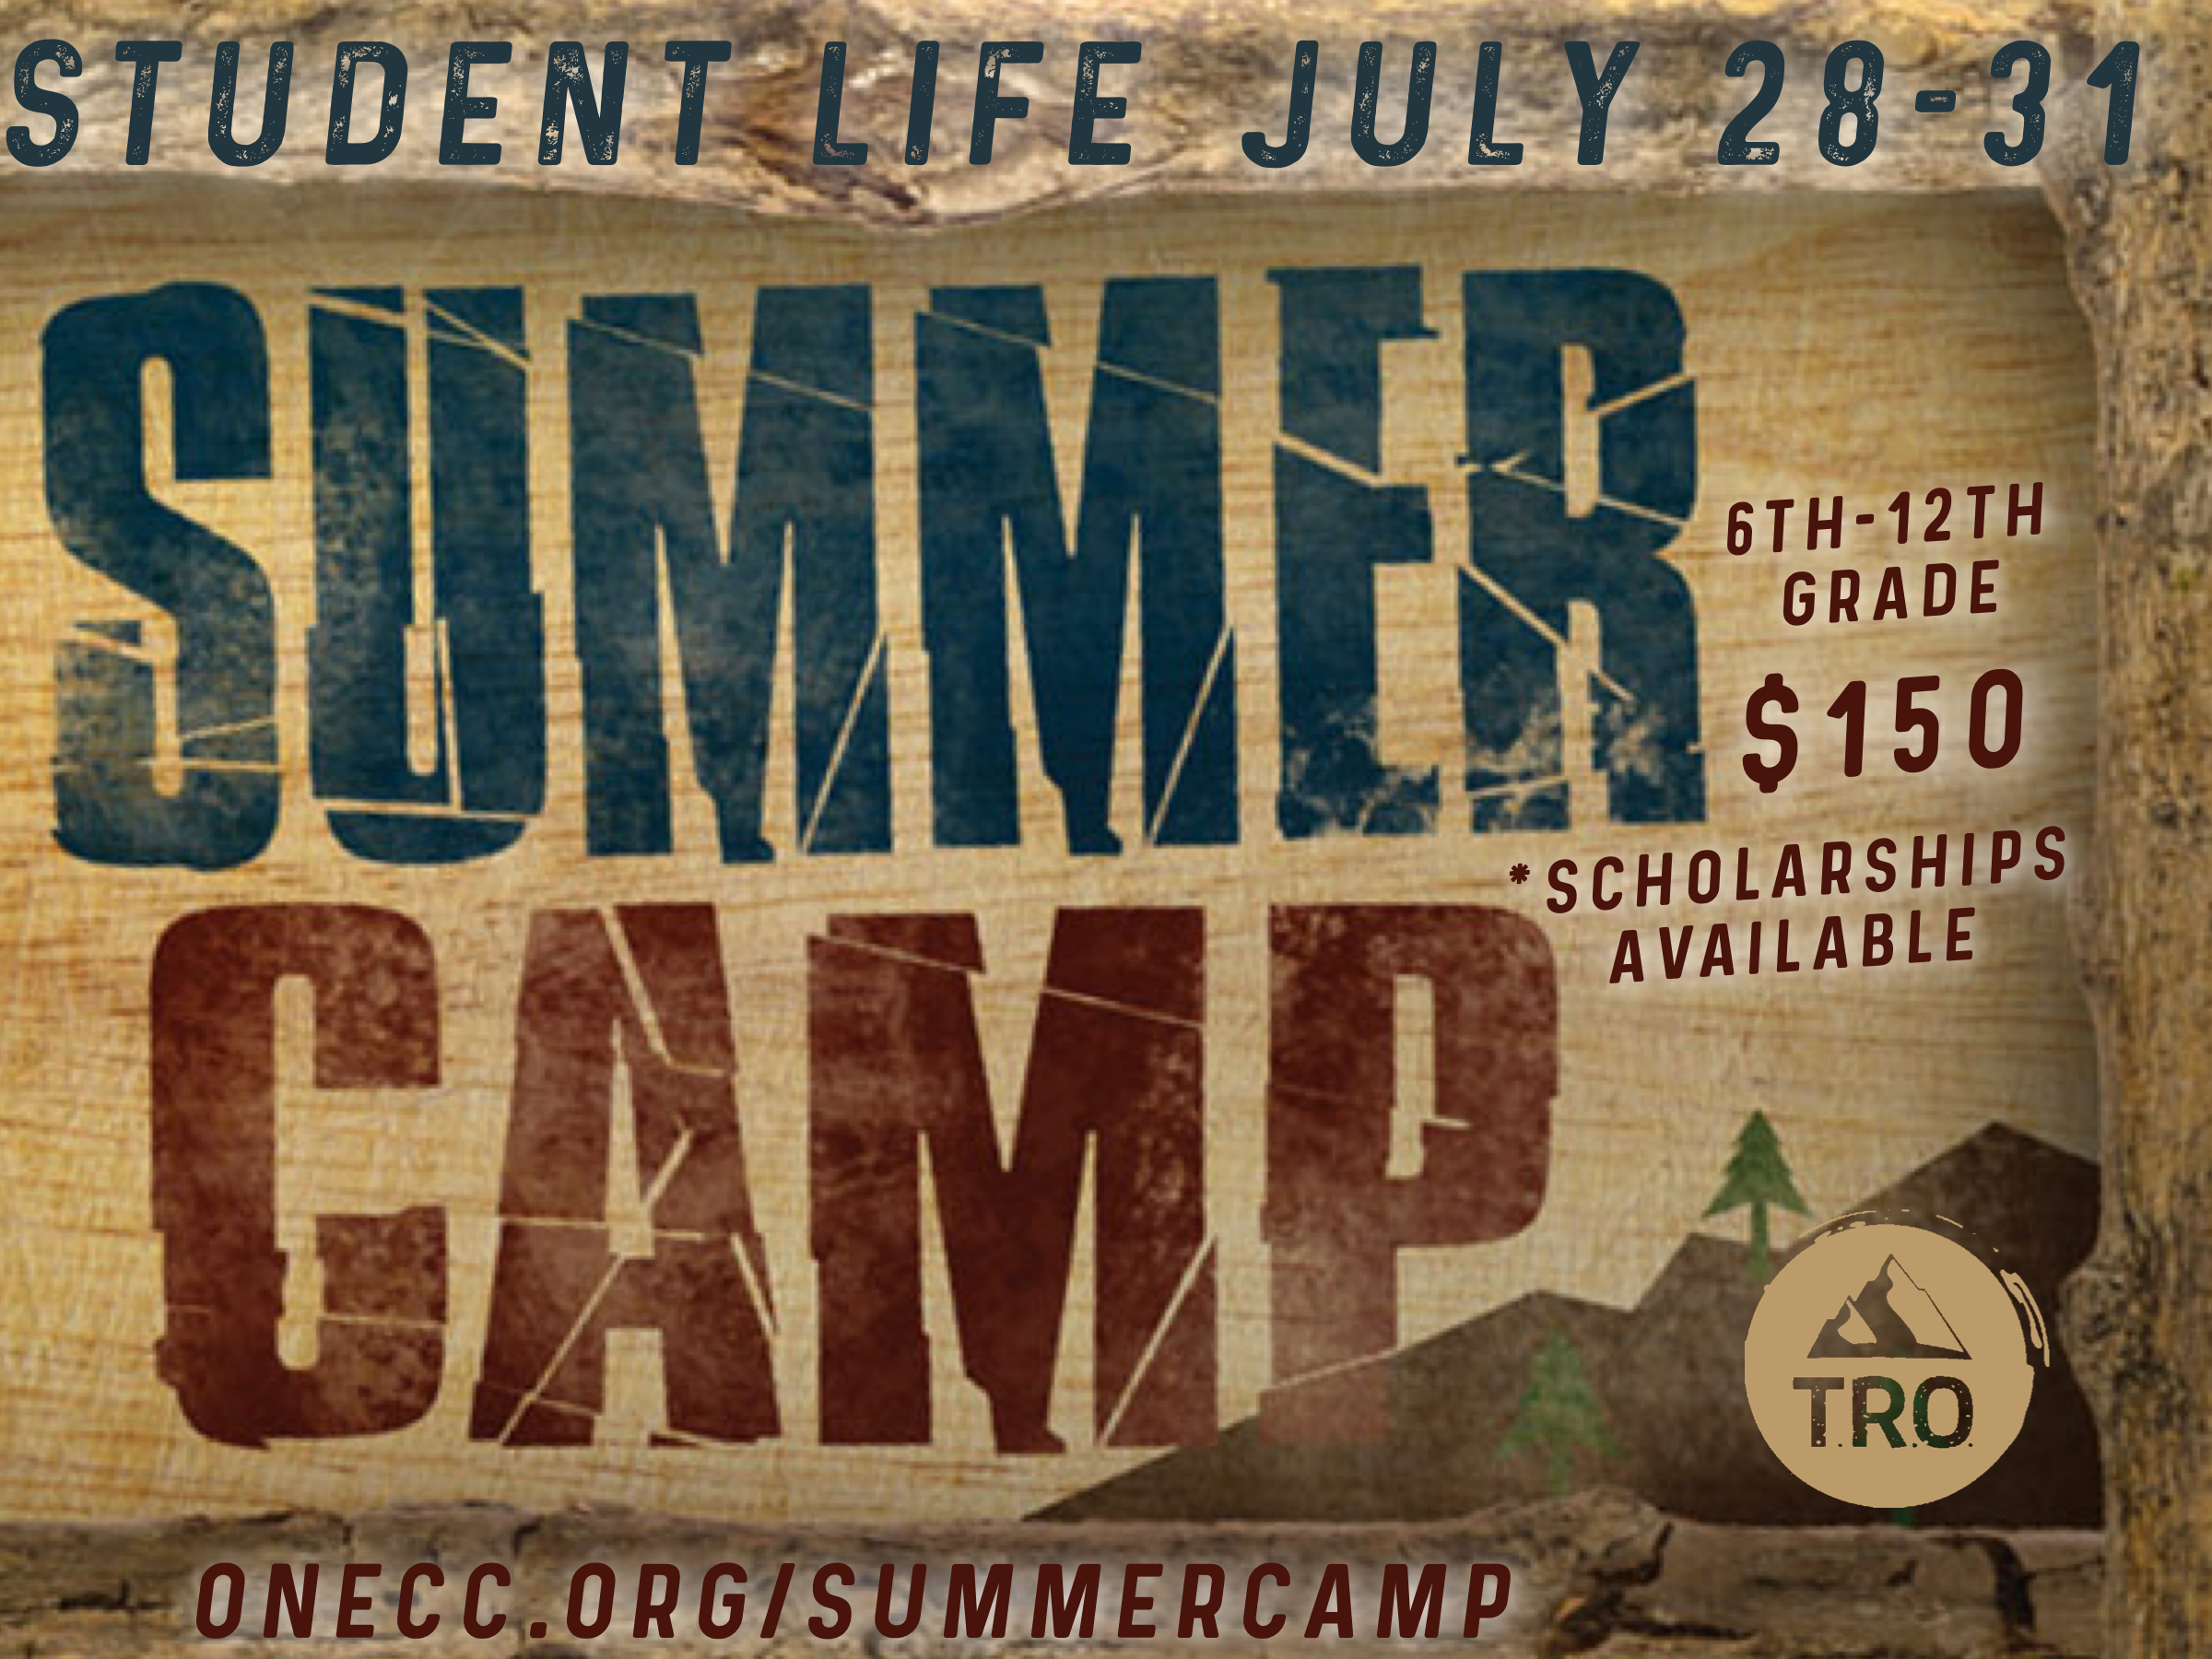 Join us for an amazing camp experience at Thomas Road Outpost! There will be awesome recreation, amazing worship and challenging talks to grow you in your walk with the Lord! Recreation options include: zip lining, atv trail riding, archery tag, paintball, gaga, basketball, lake activities, fishing and more. It will be an awesome four days to disconnect from your normal life, make fun memories with your friends and spend time with the Lord in the great outdoors!    DATE: July 28-31    GRADES: 6TH - 12TH Grade    LOCATION: Thomas Road Outpost    COST: $150 *scholarships available if needed    DROP OFF: Sunday, July 28 at One Community Church at 5:00pm    PICK UP: Wednesday, July 31 at One Community Church at Noon